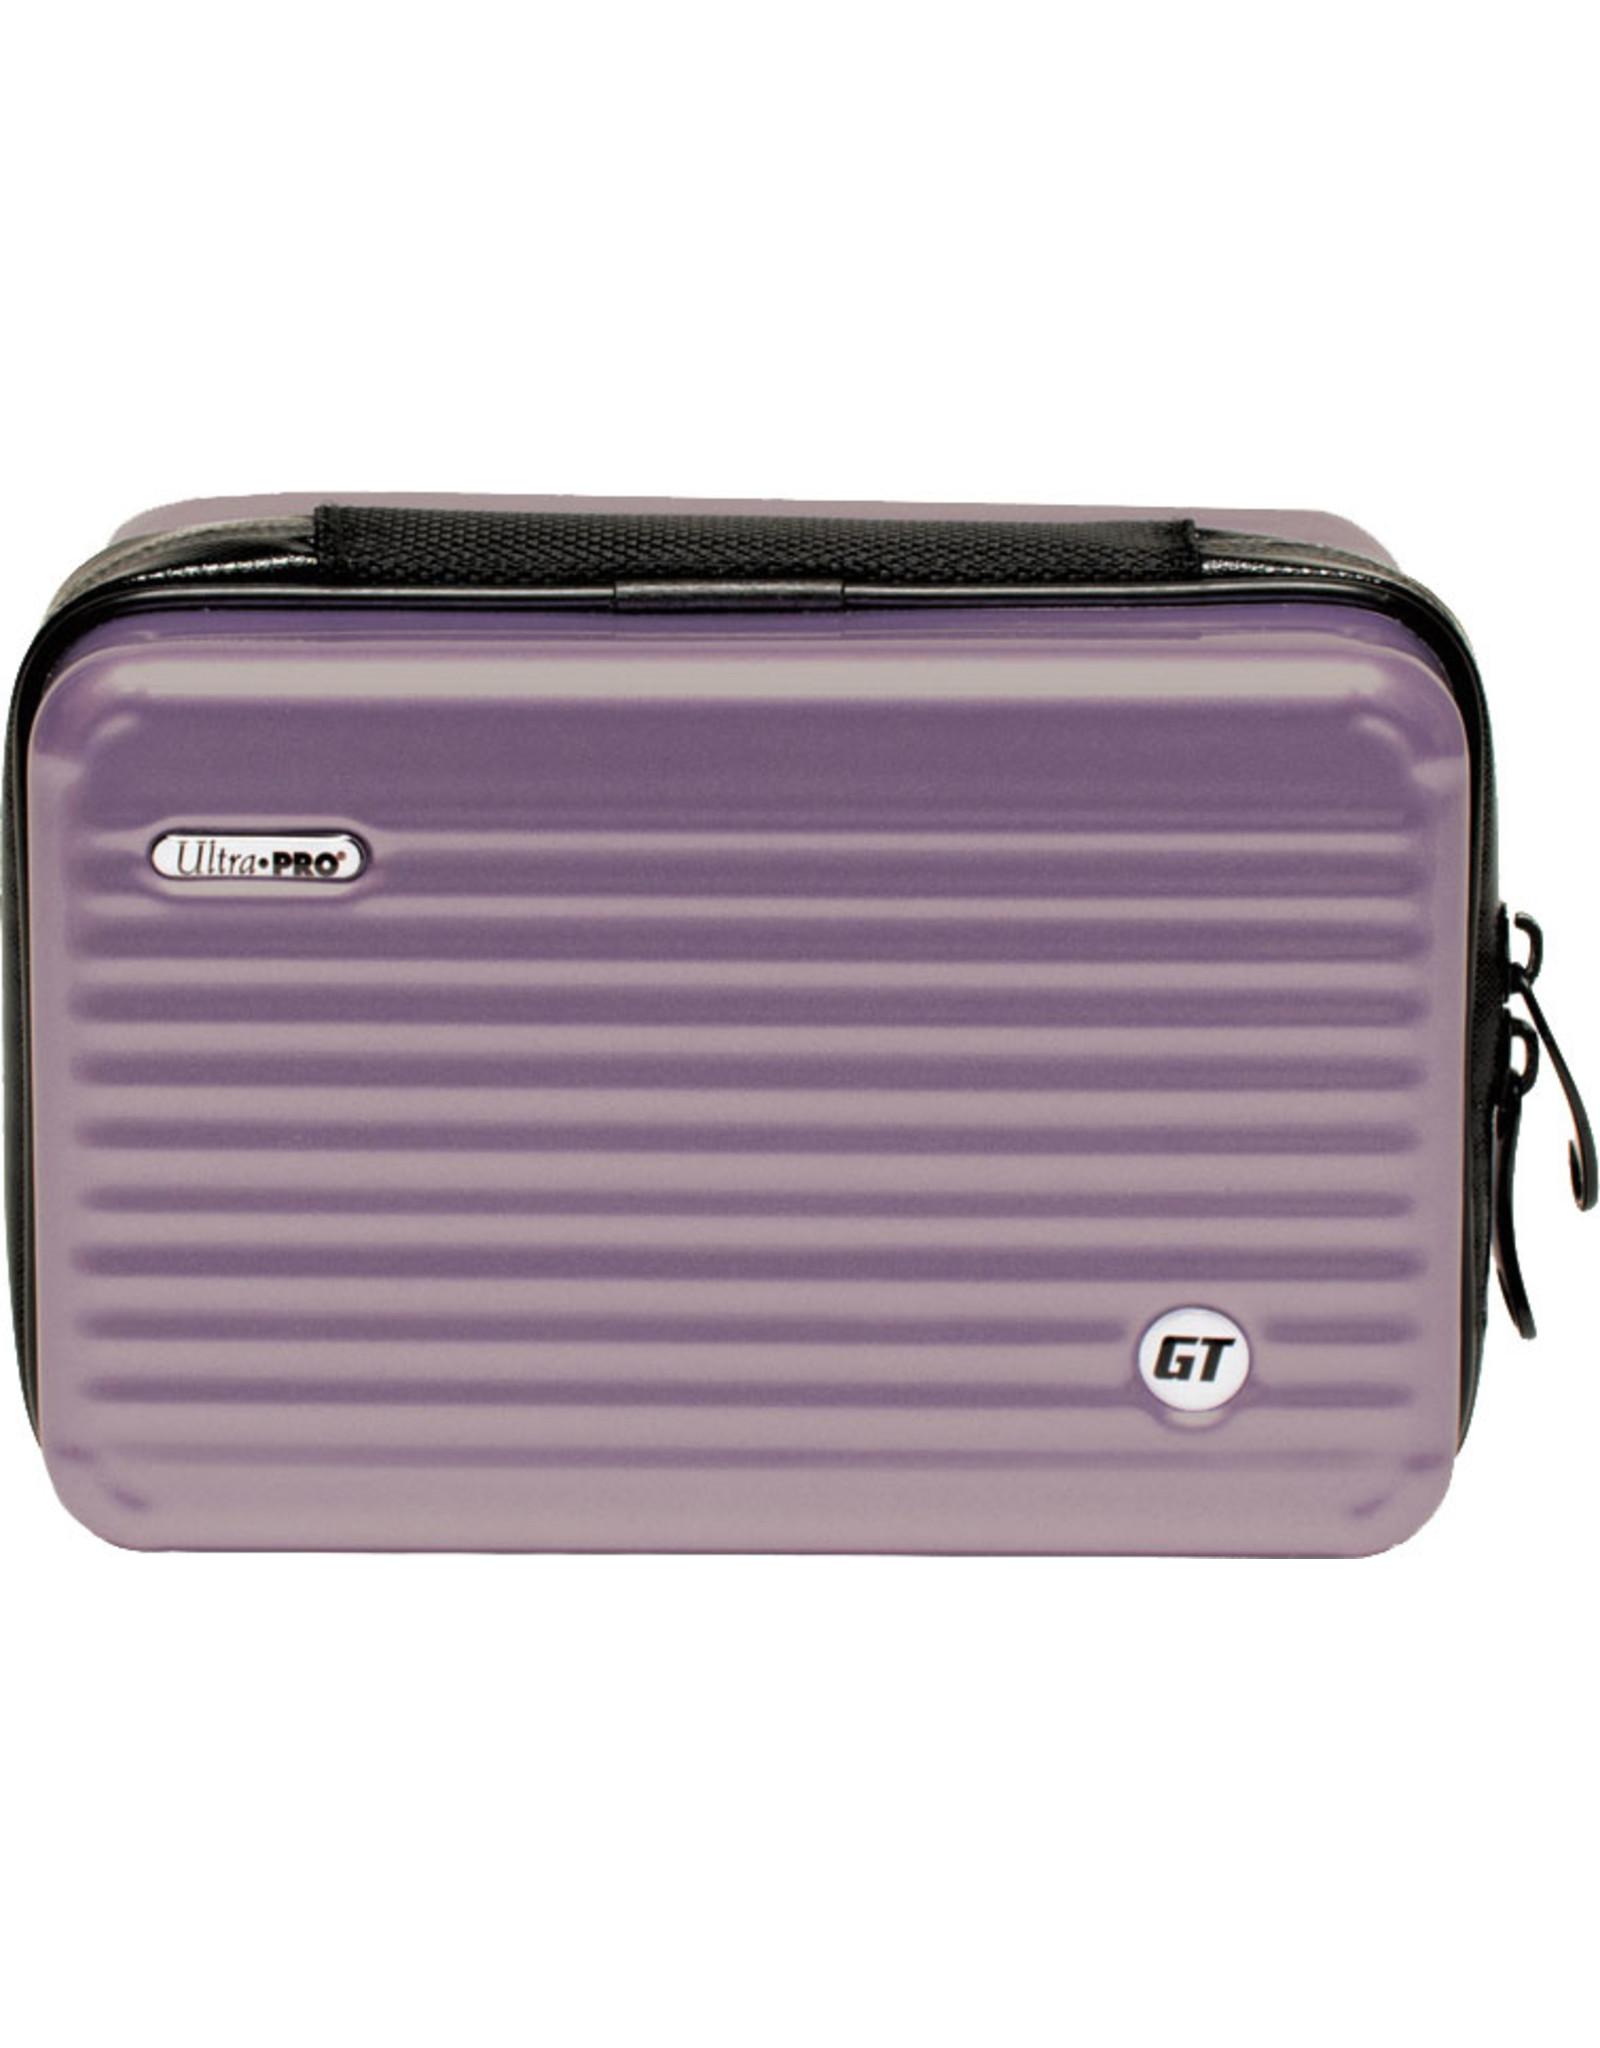 Ultra Pro Deck Box: GT Luggage PU